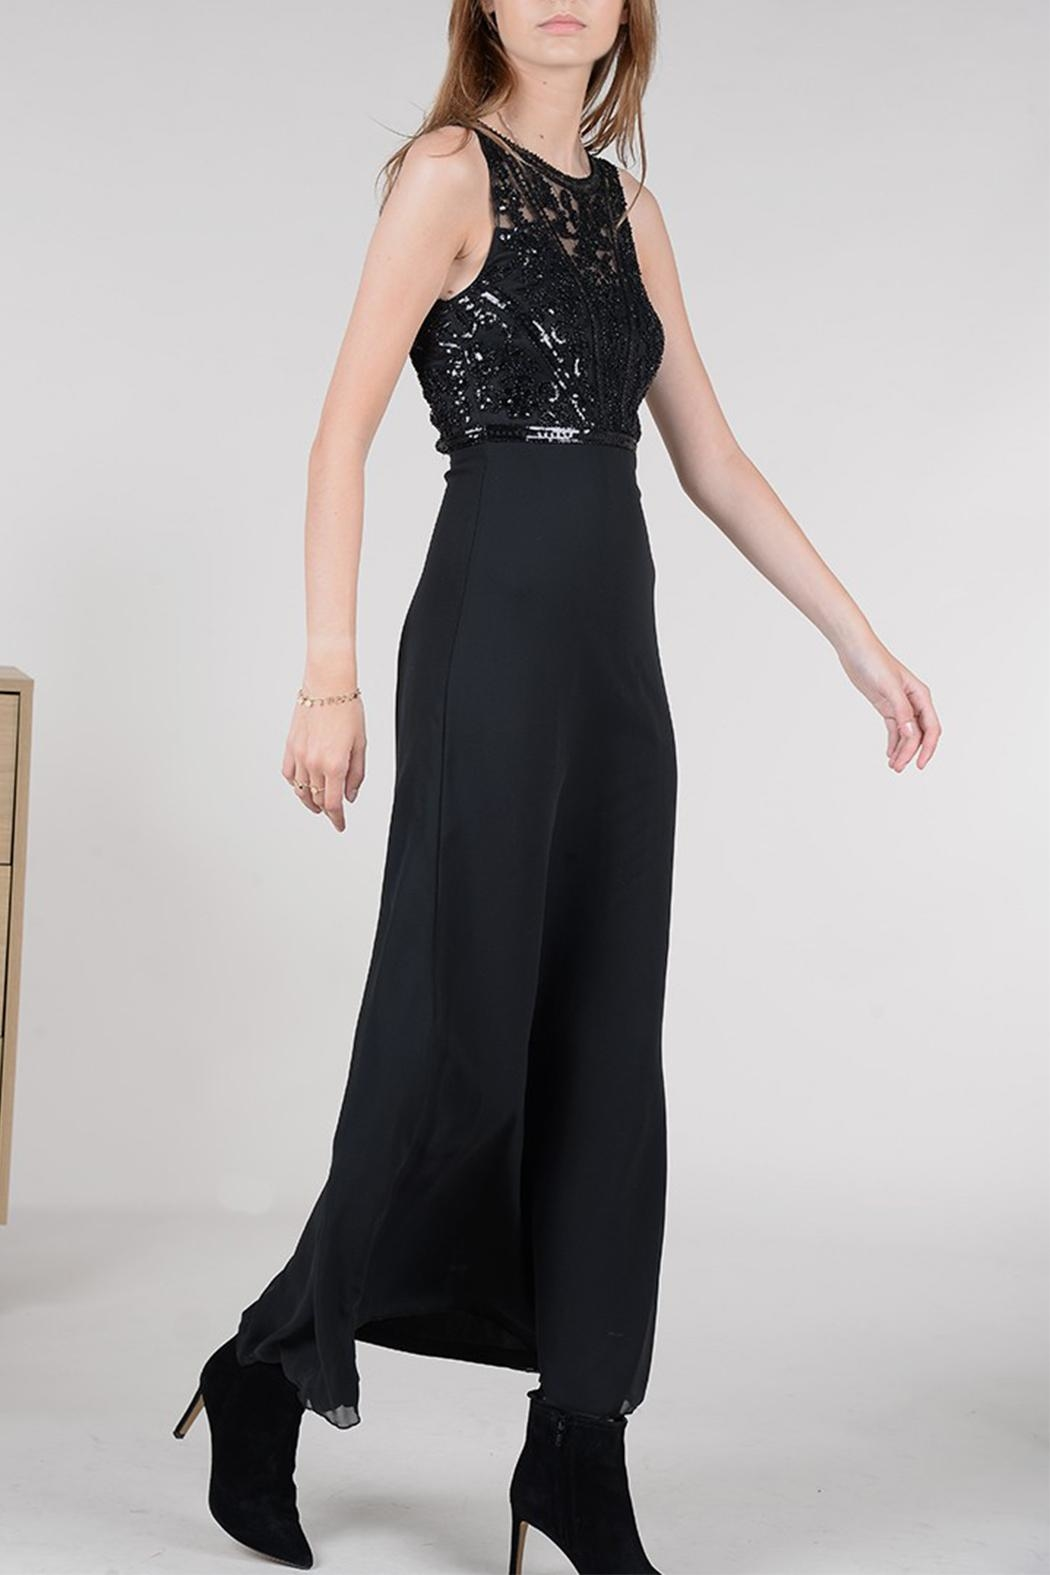 Molly Bracken Long Cocktail Dress - Side Cropped Image